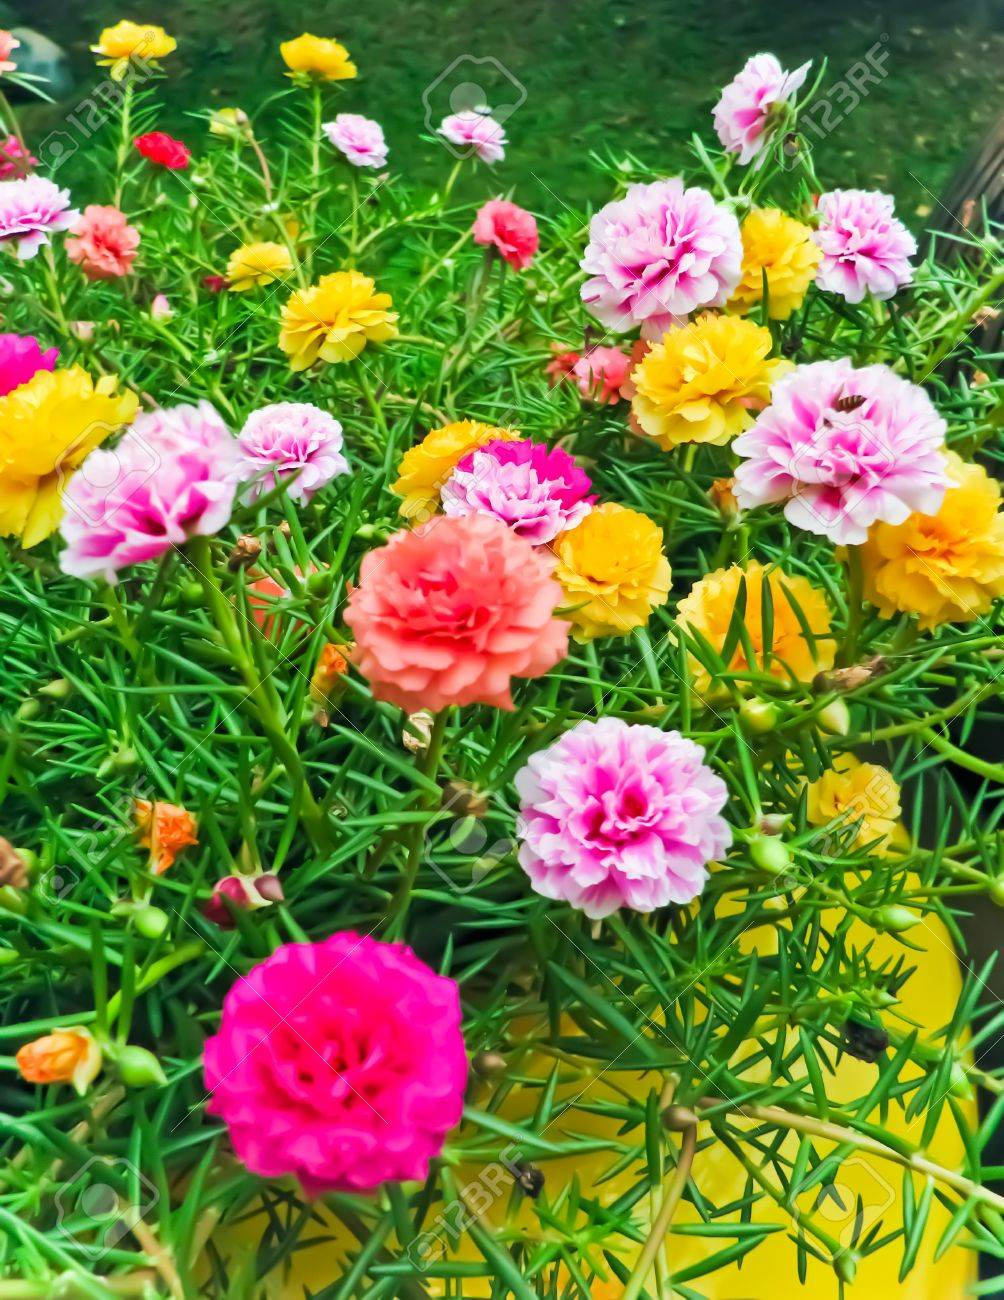 Portulaca Rose blooming in the garden Stock Photo - 10301740